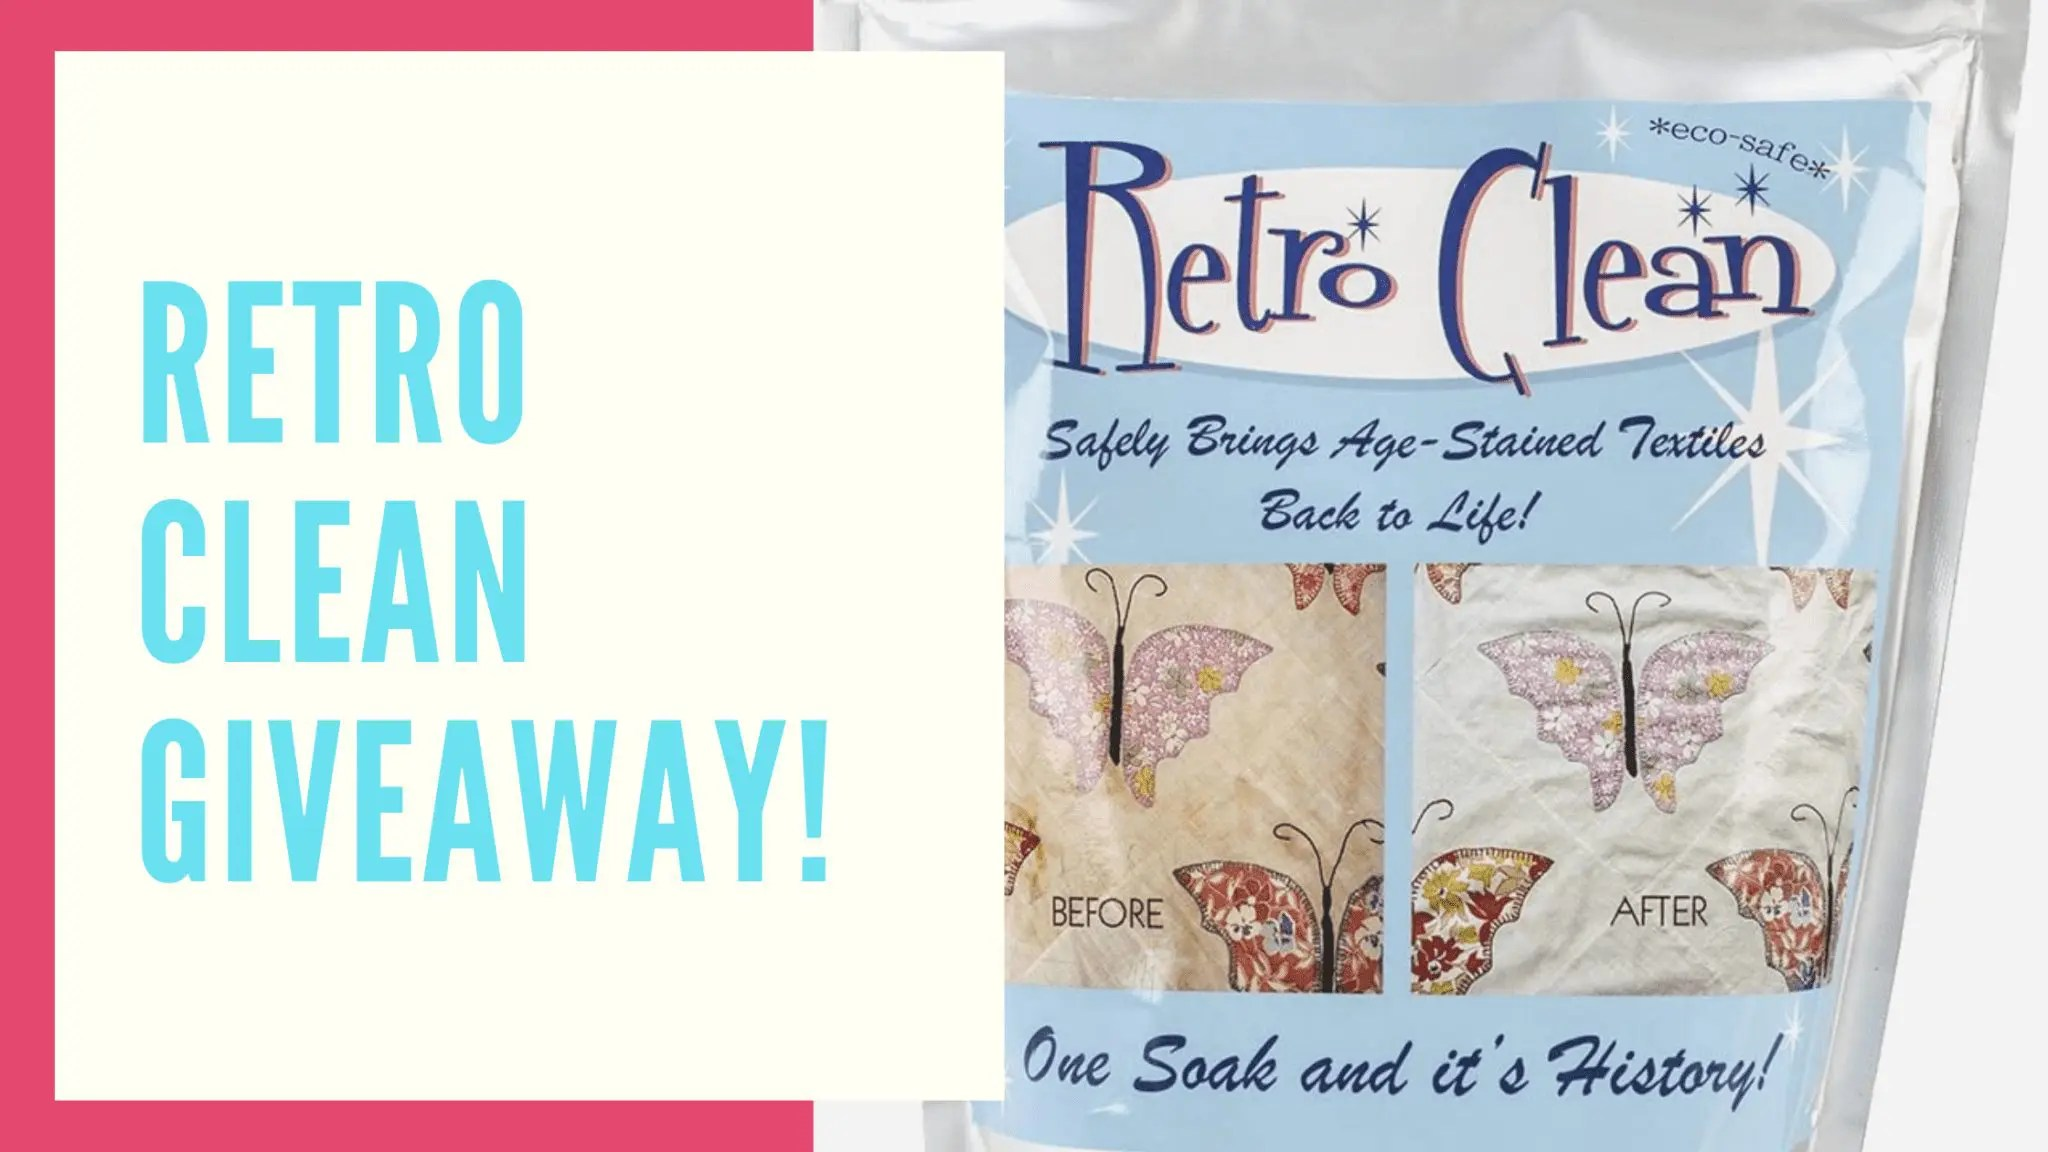 Retro Clean Giveaway!